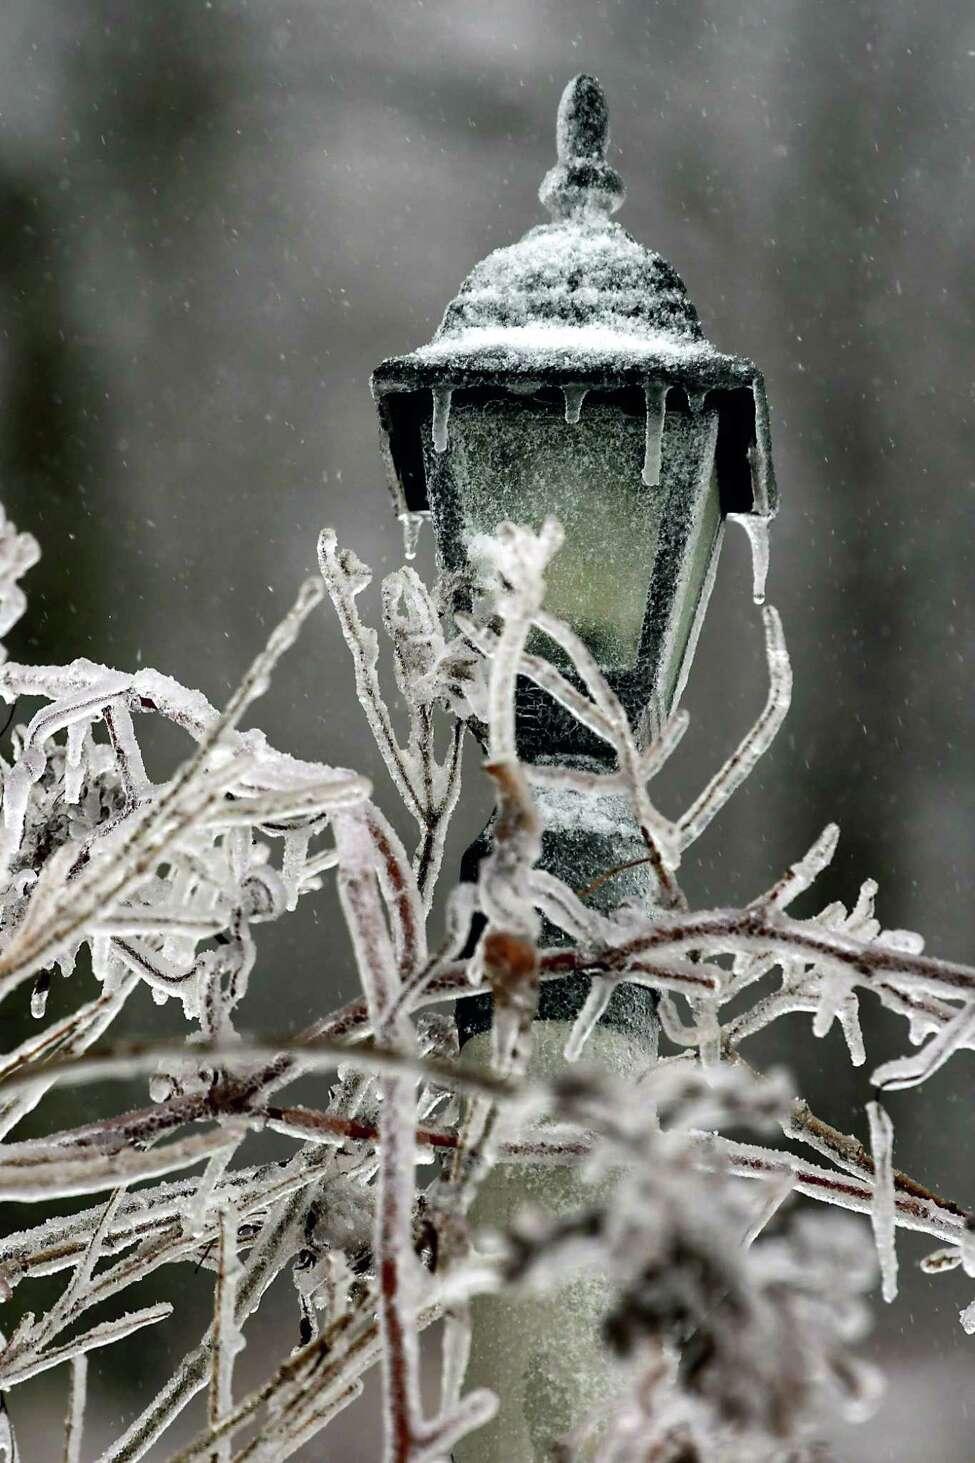 Branches and a light post are covered in ice during an ice storm in the hill towns on Monday, Dec. 30, 2019 in Altamont, N.Y. (Lori Van Buren/Times Union)